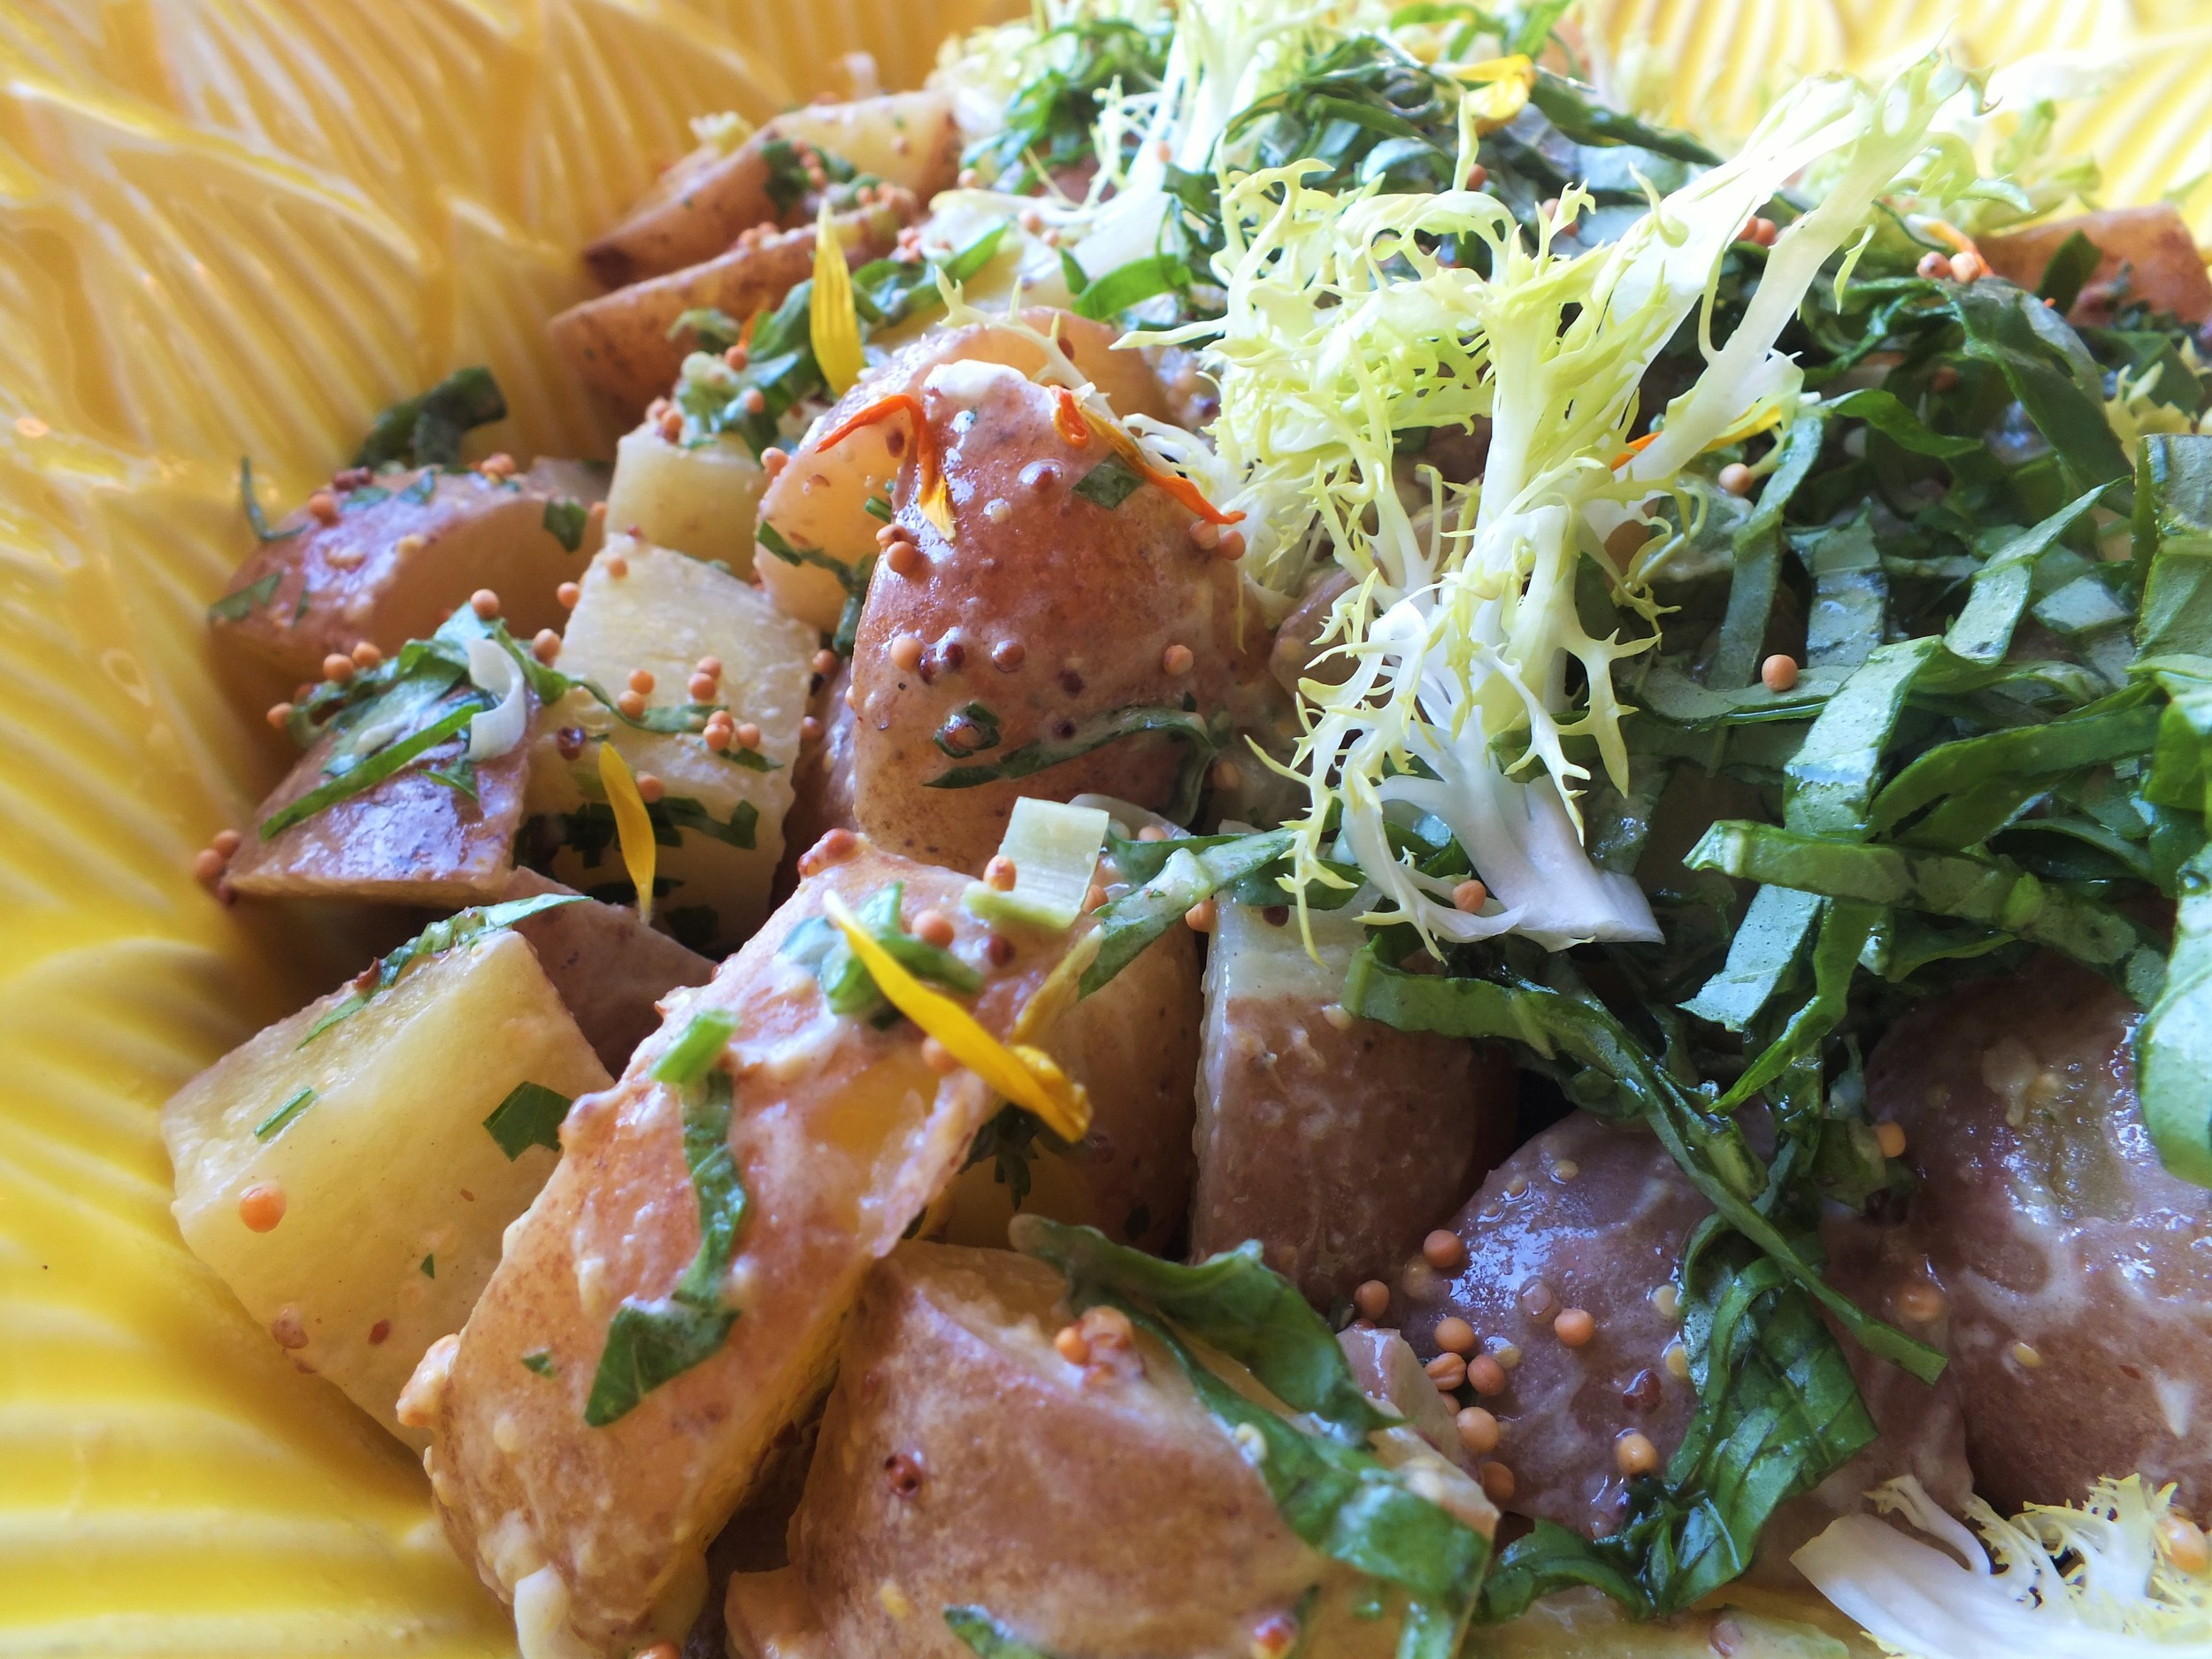 Red Potato Salad with Mustard Seed Dressing, Herbs & Frisee